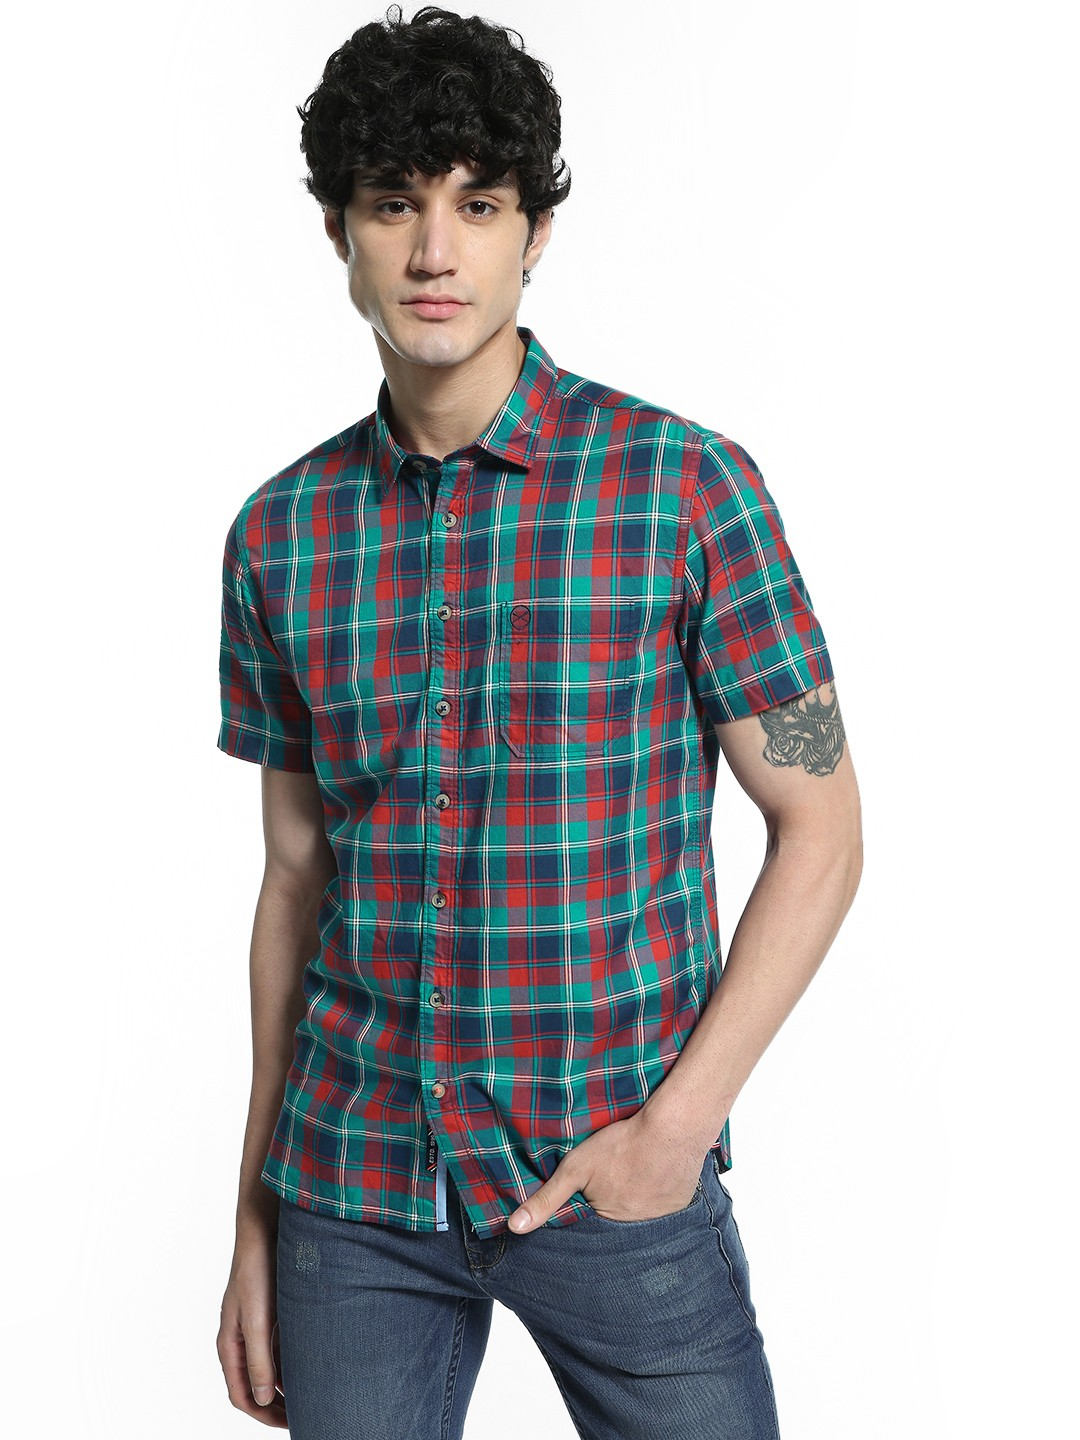 SCULLERS Multi Multi-Check Short Sleeve Shirt 1